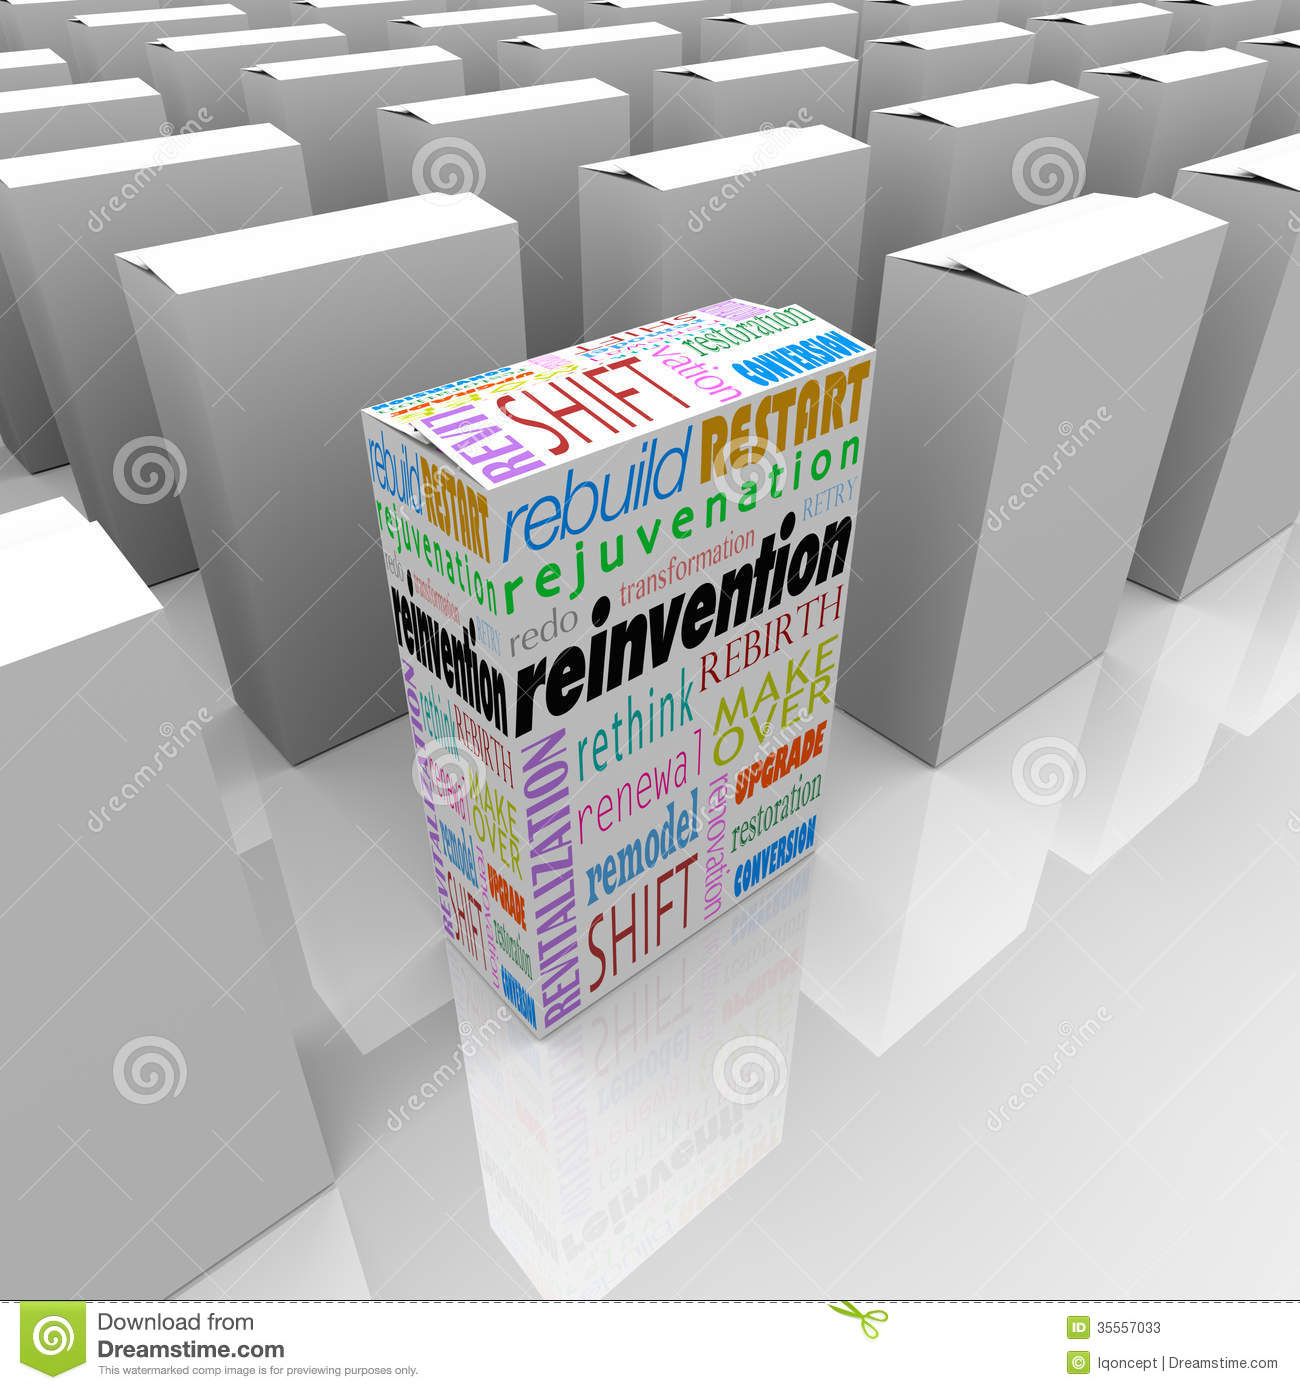 Reinvention One New Product Box Best Competitive Advantage